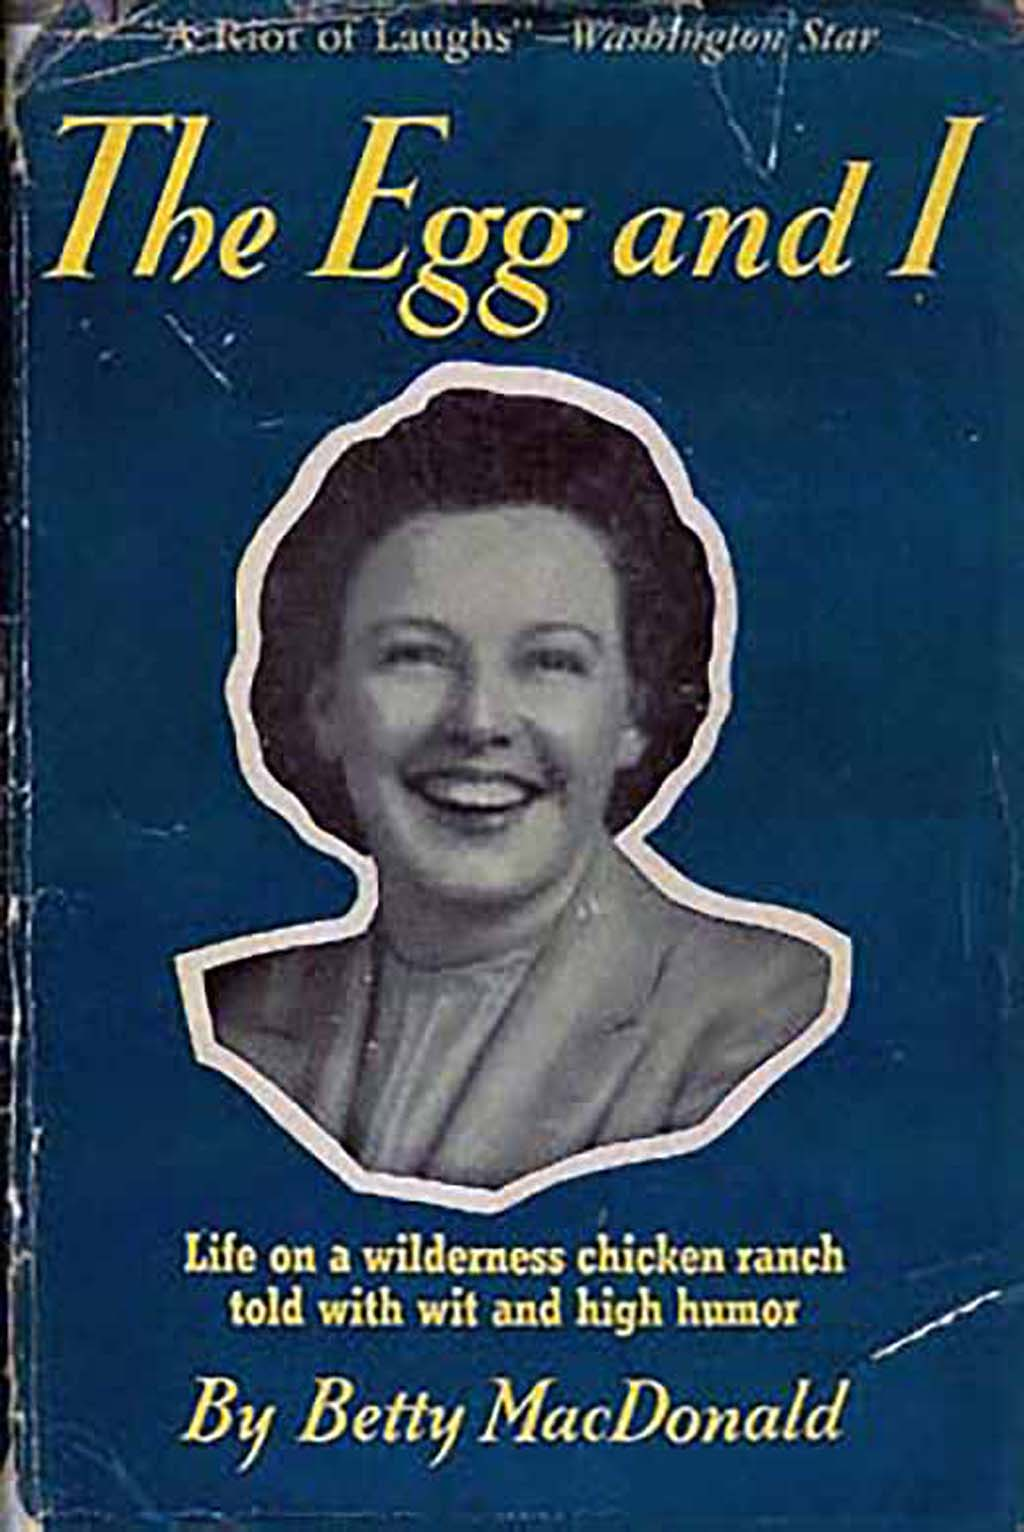 betty macdonald u0026 39 s the egg and i is published on october 3